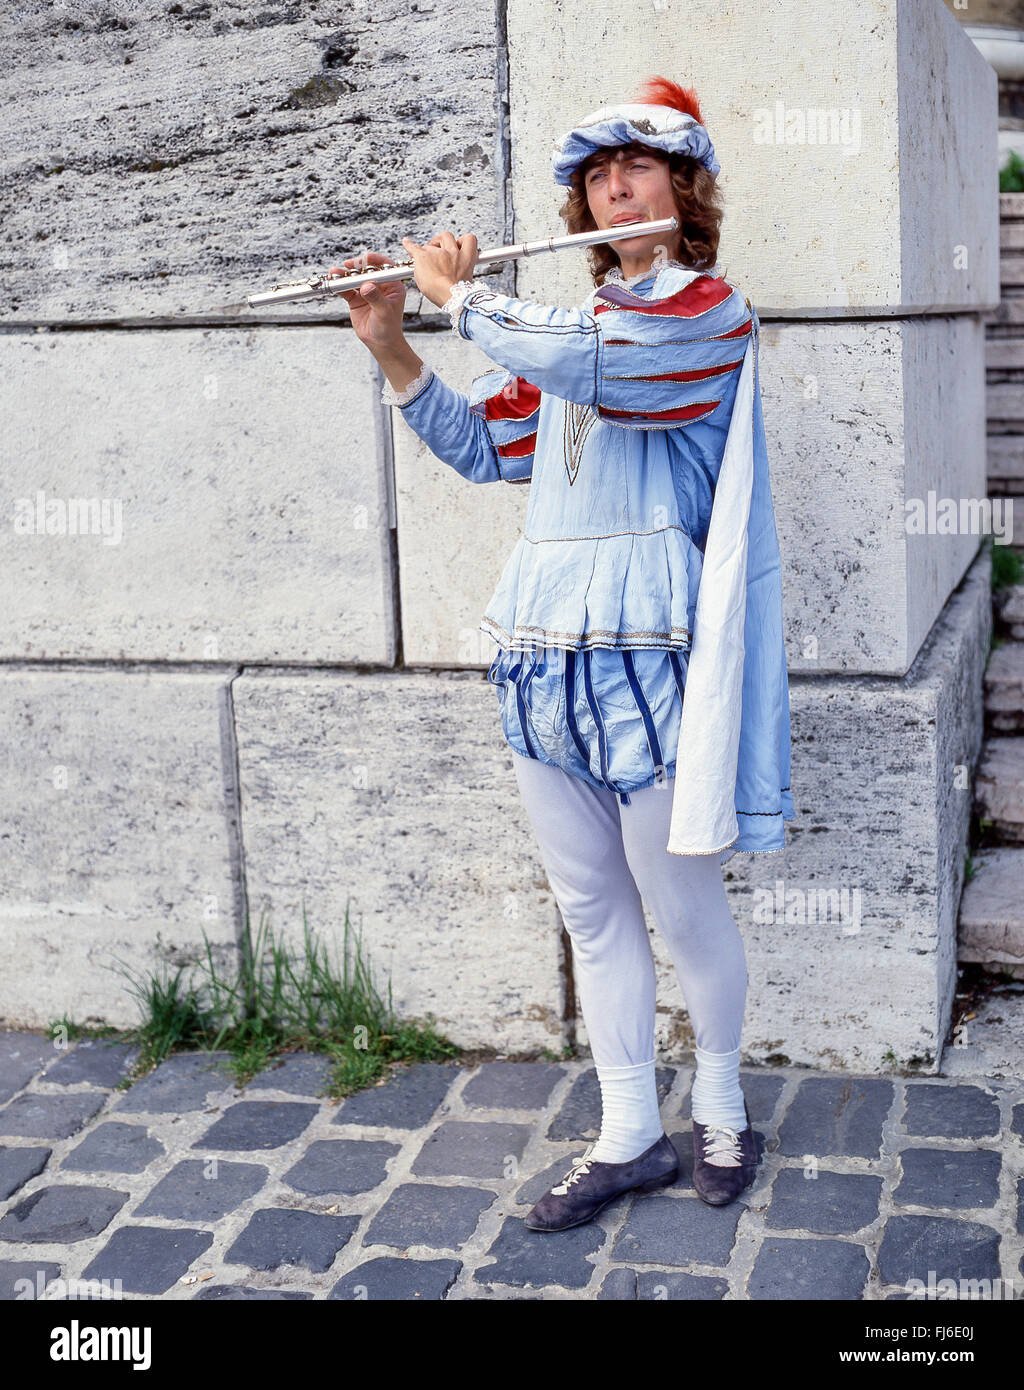 Flute player in period costume on street, Szentendre, Pest County, Central Hungary Region, Republic of Hungary - Stock Image